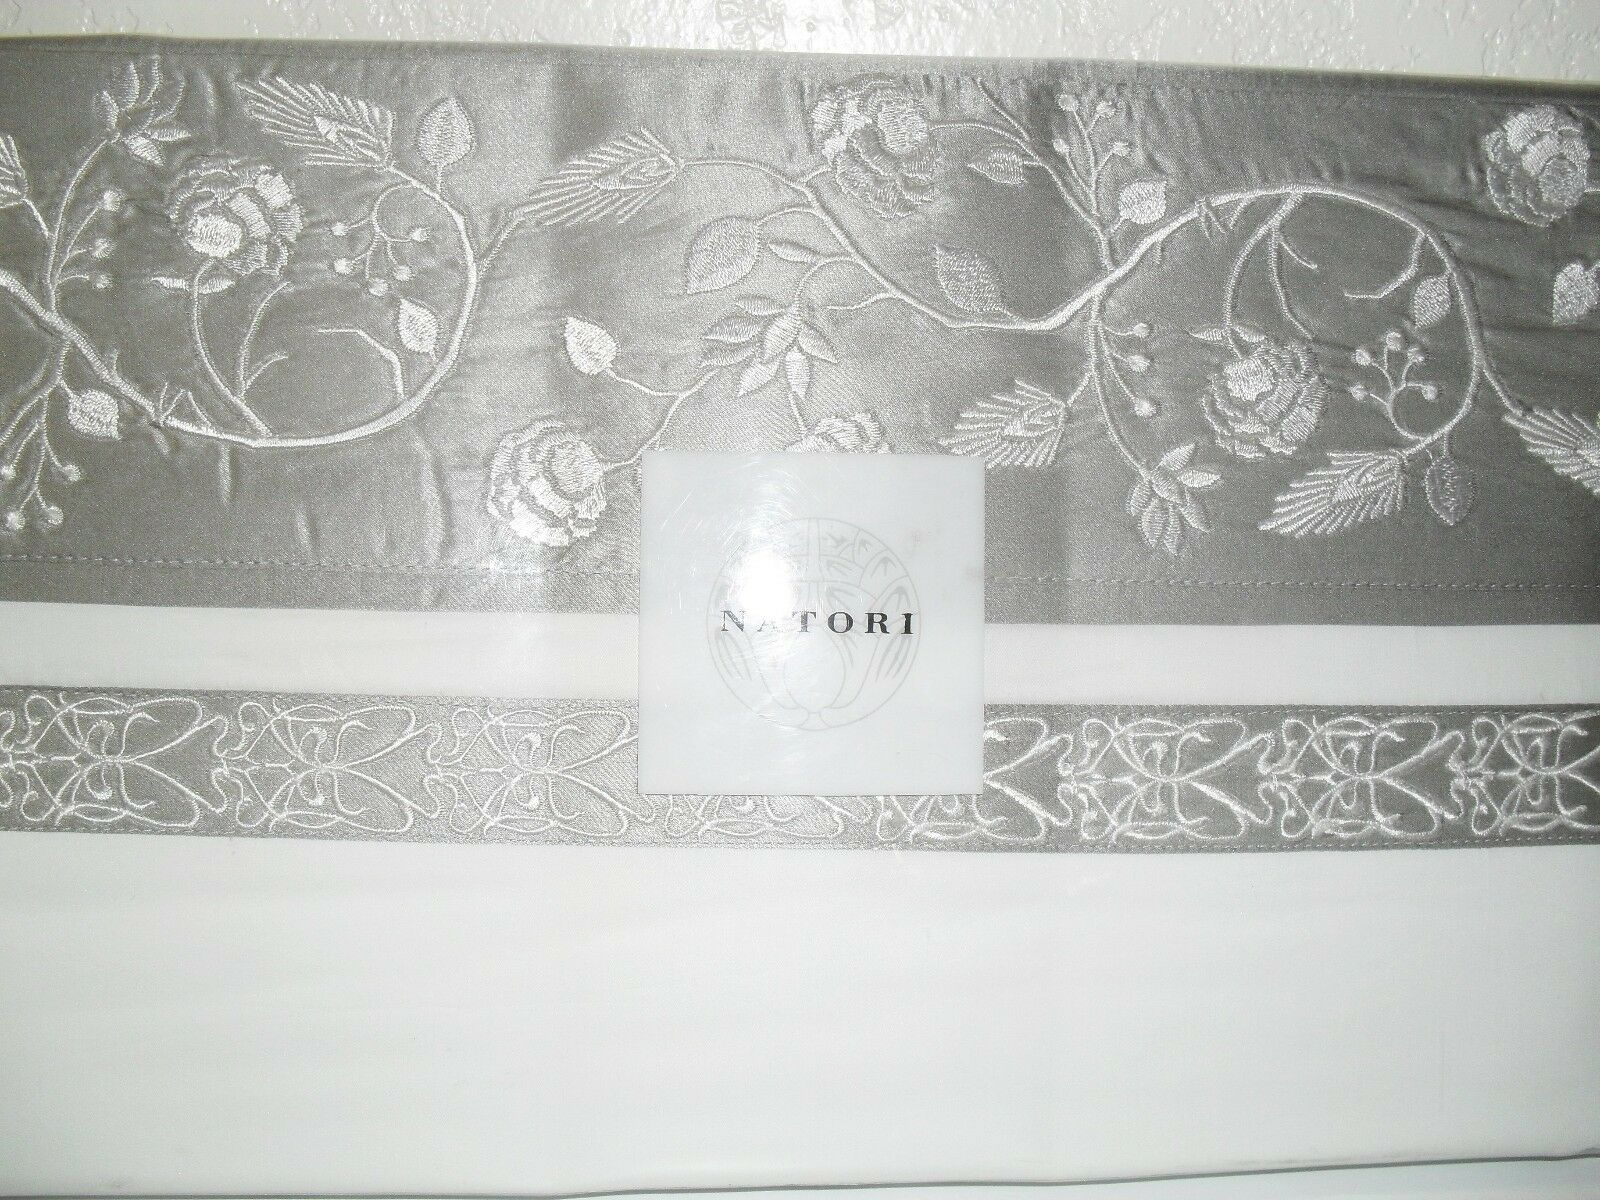 NATORI MADAME NING GREY EMBROIDERED QUEEN FLAT SHEET